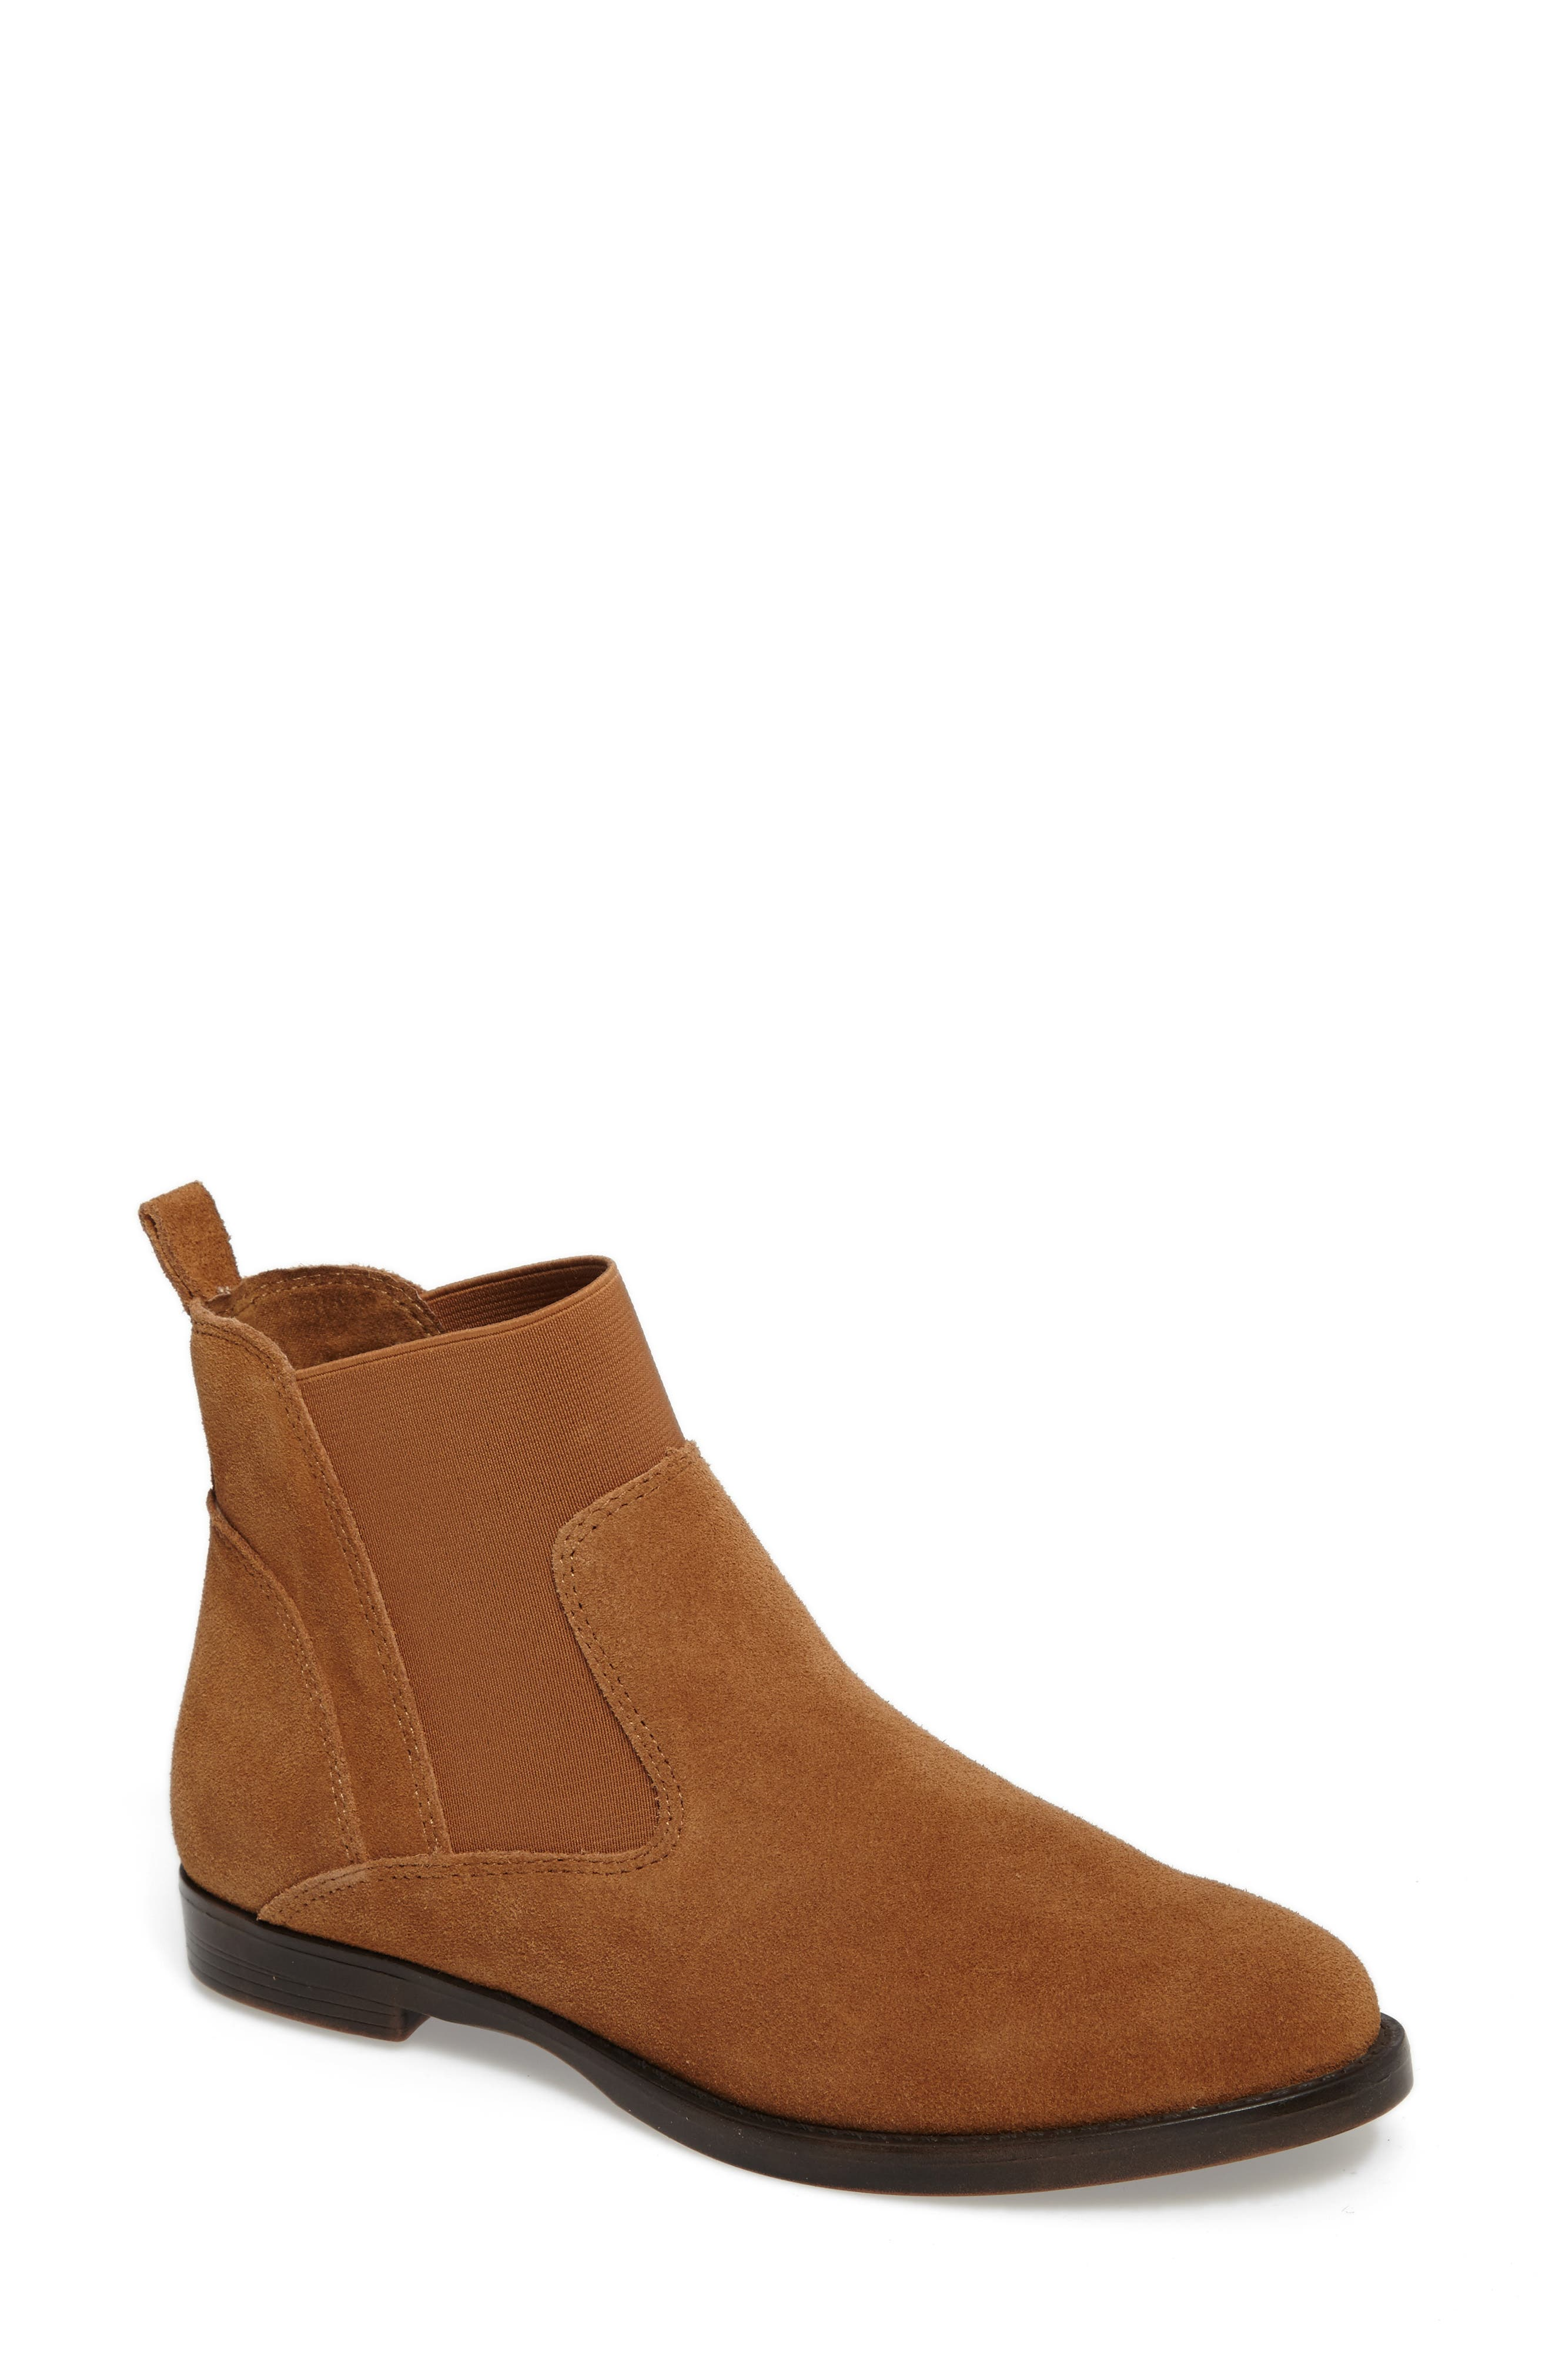 Rayna Chelsea Boot,                             Main thumbnail 1, color,                             Tan Suede